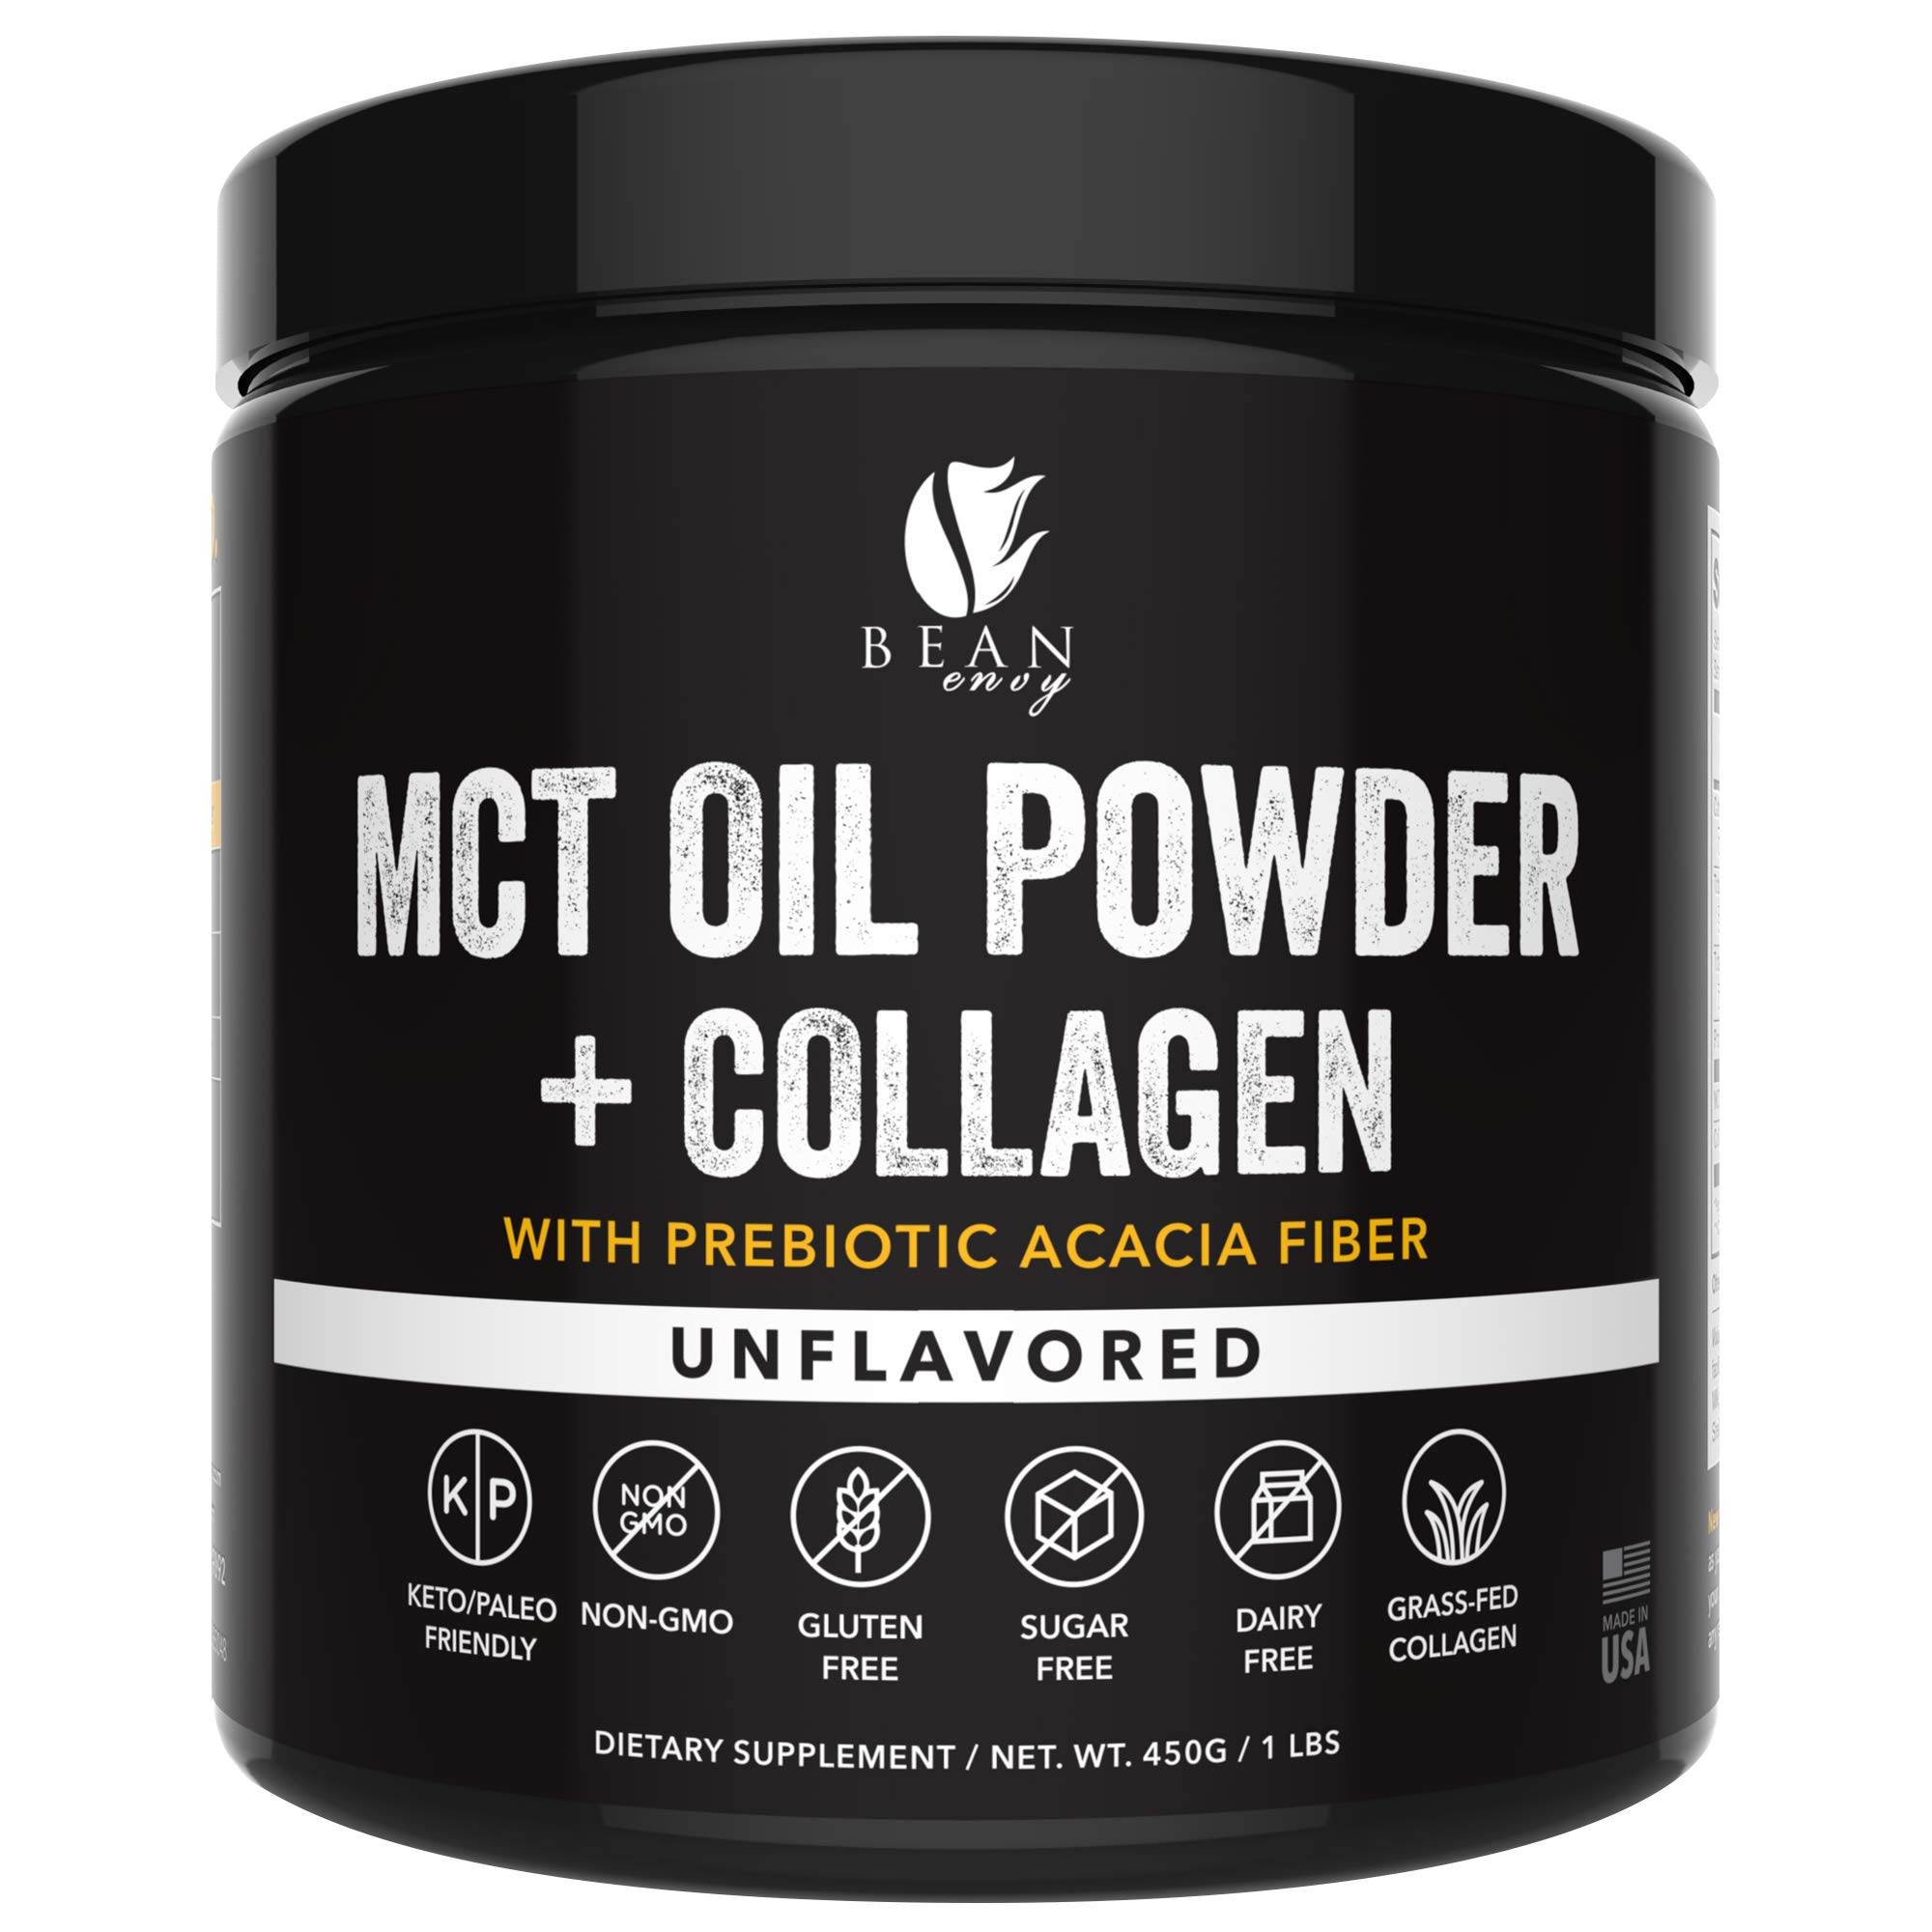 MCT Oil Powder + Collagen + Prebiotic Acacia Fiber - 100% Pure MCT's - Perfect for Keto - Energy Boost - Nutrient Absorption - Healthy Gut Support - Unflavored by Bean Envy